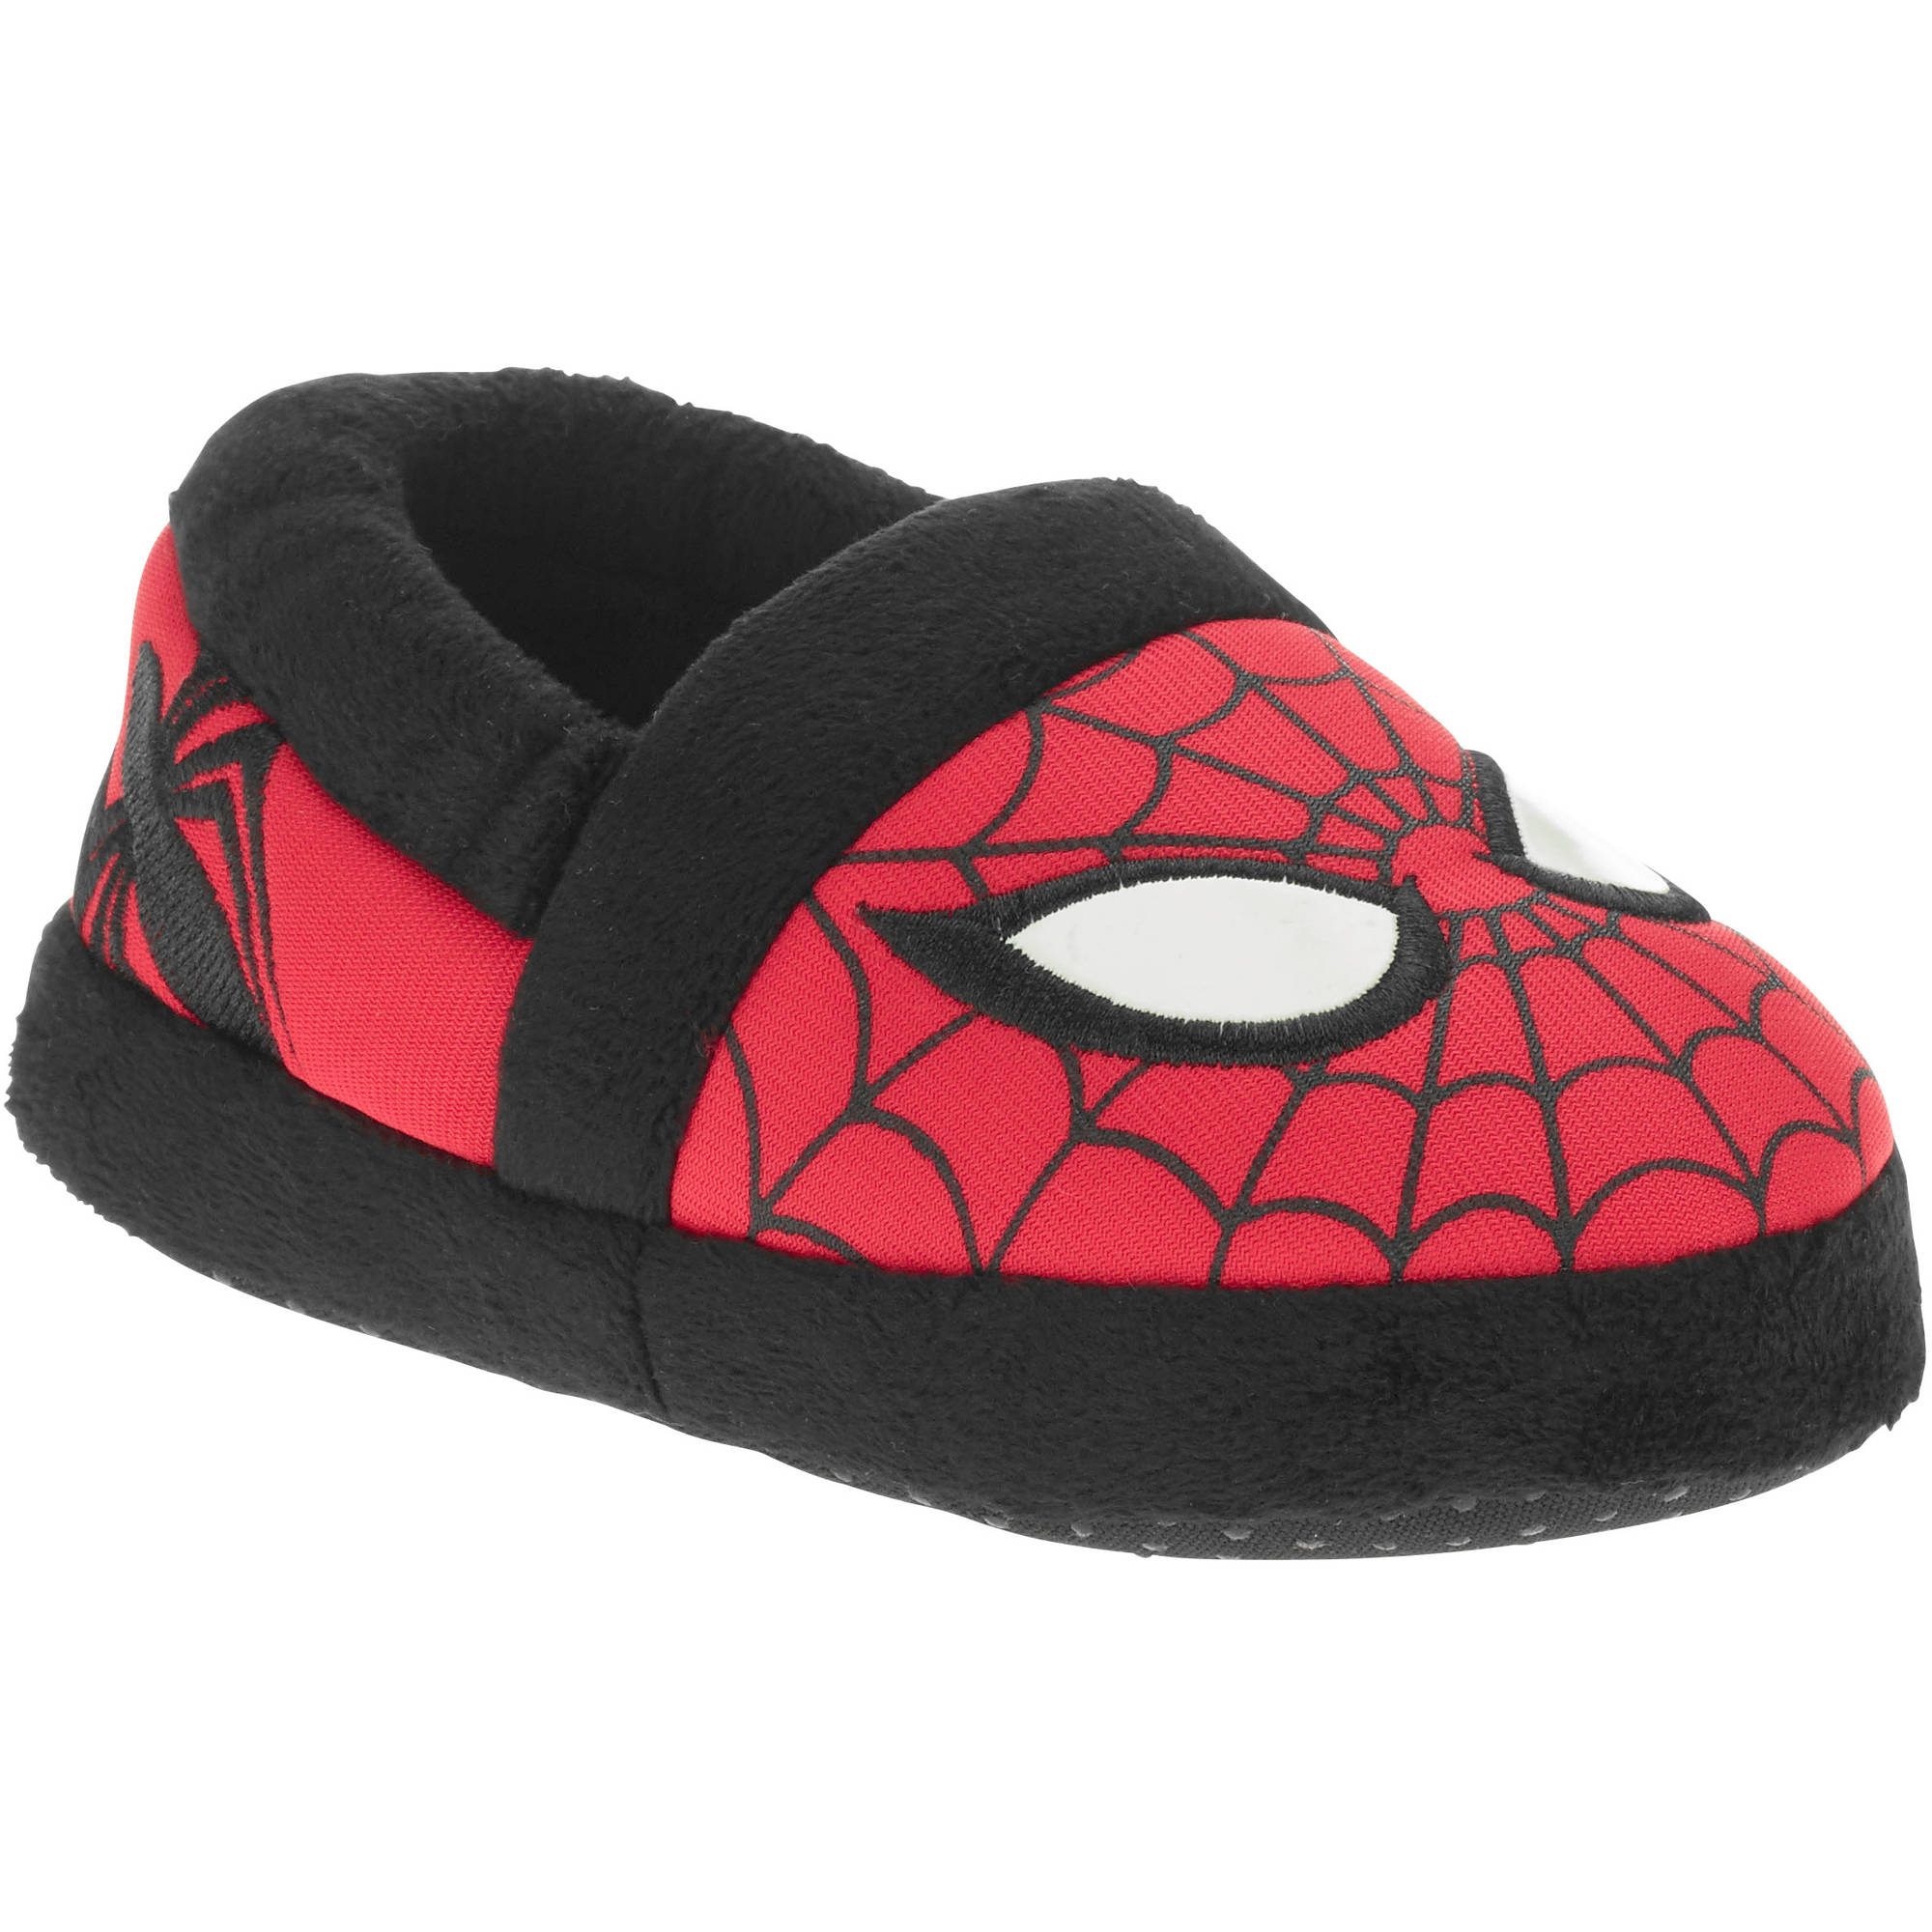 Spiderman Toddler Boy's Aline Slipper